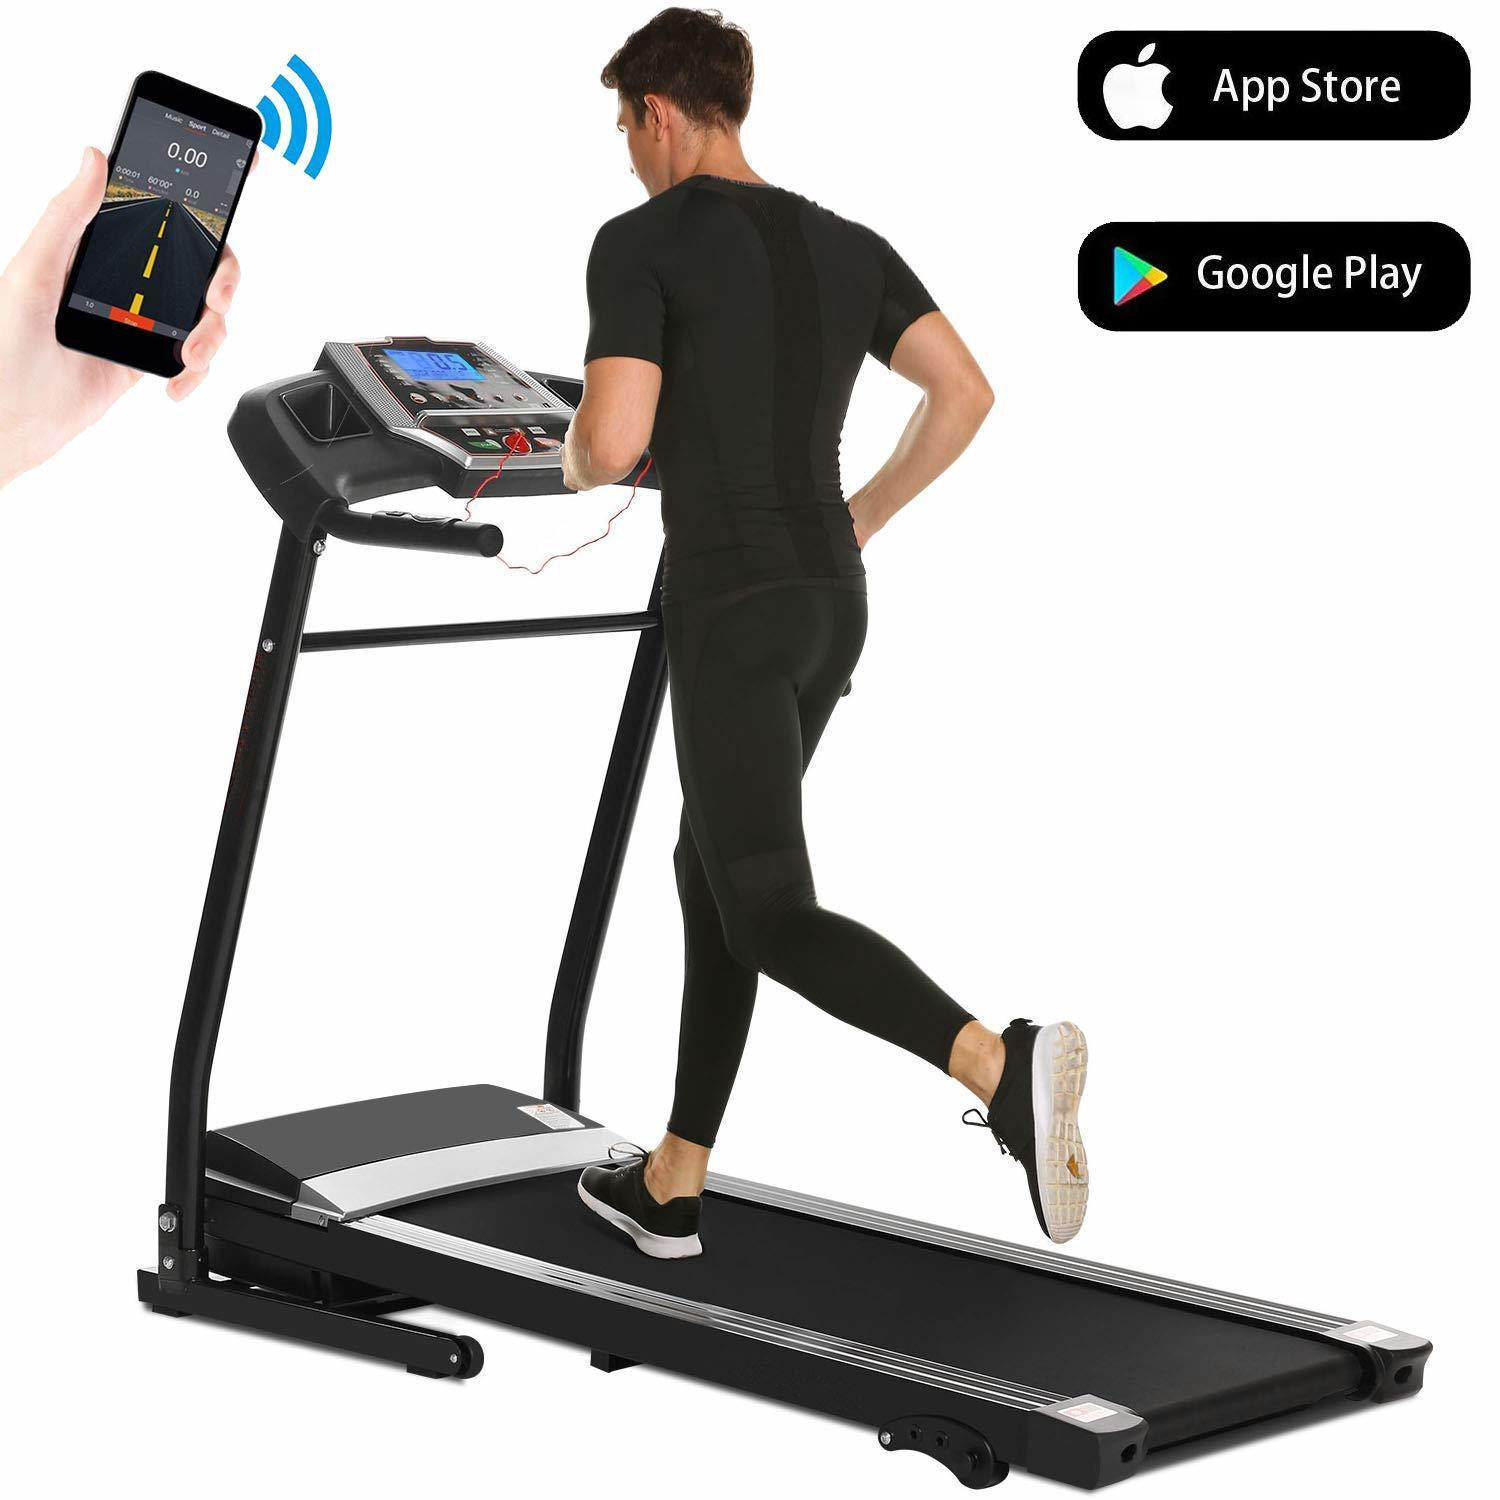 Folding Electric Treadmill Incline Motorized Power Fitness Running Machine Smartphone APP Control for Home Gym Exercise HFON